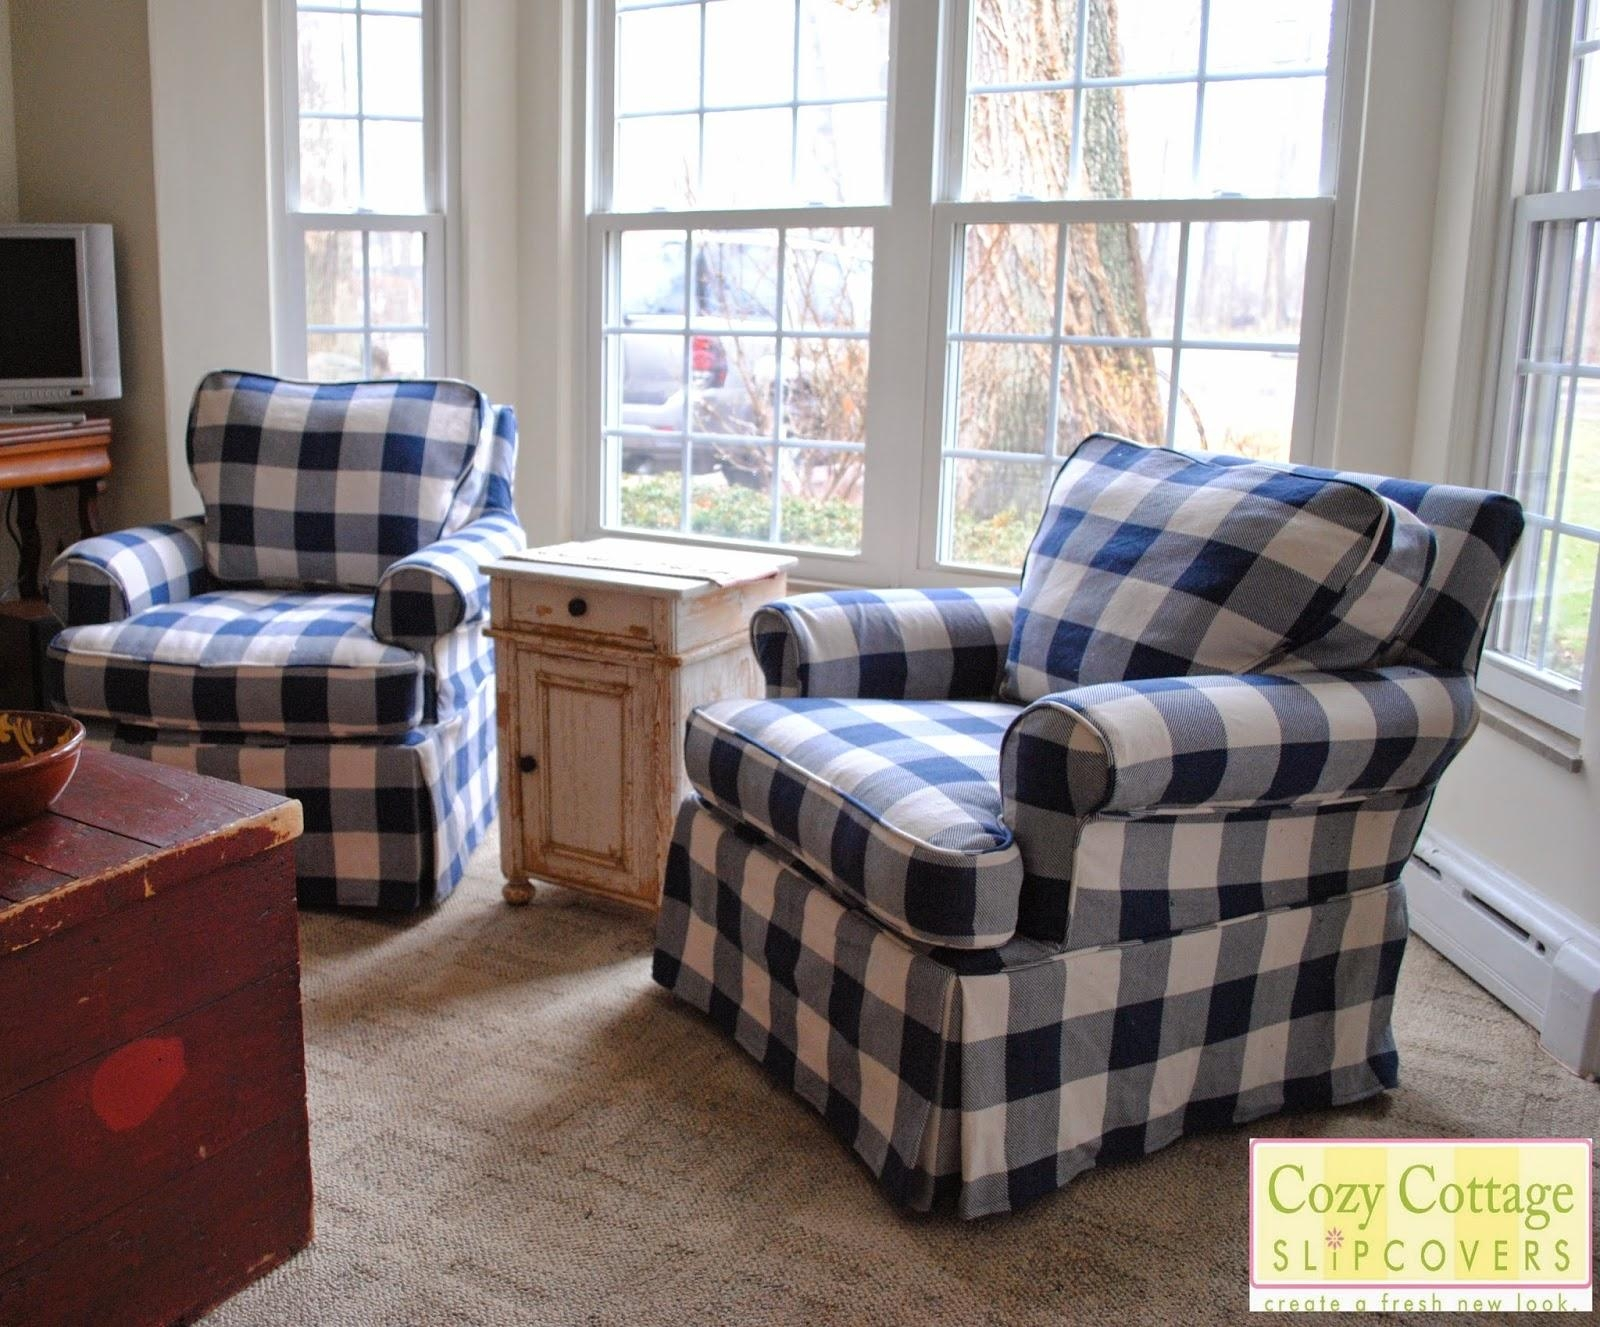 Cozy Cottage Slipcovers: Blue And White Buffalo Check Slipcovers Inside Blue Slipcovers (Image 5 of 20)